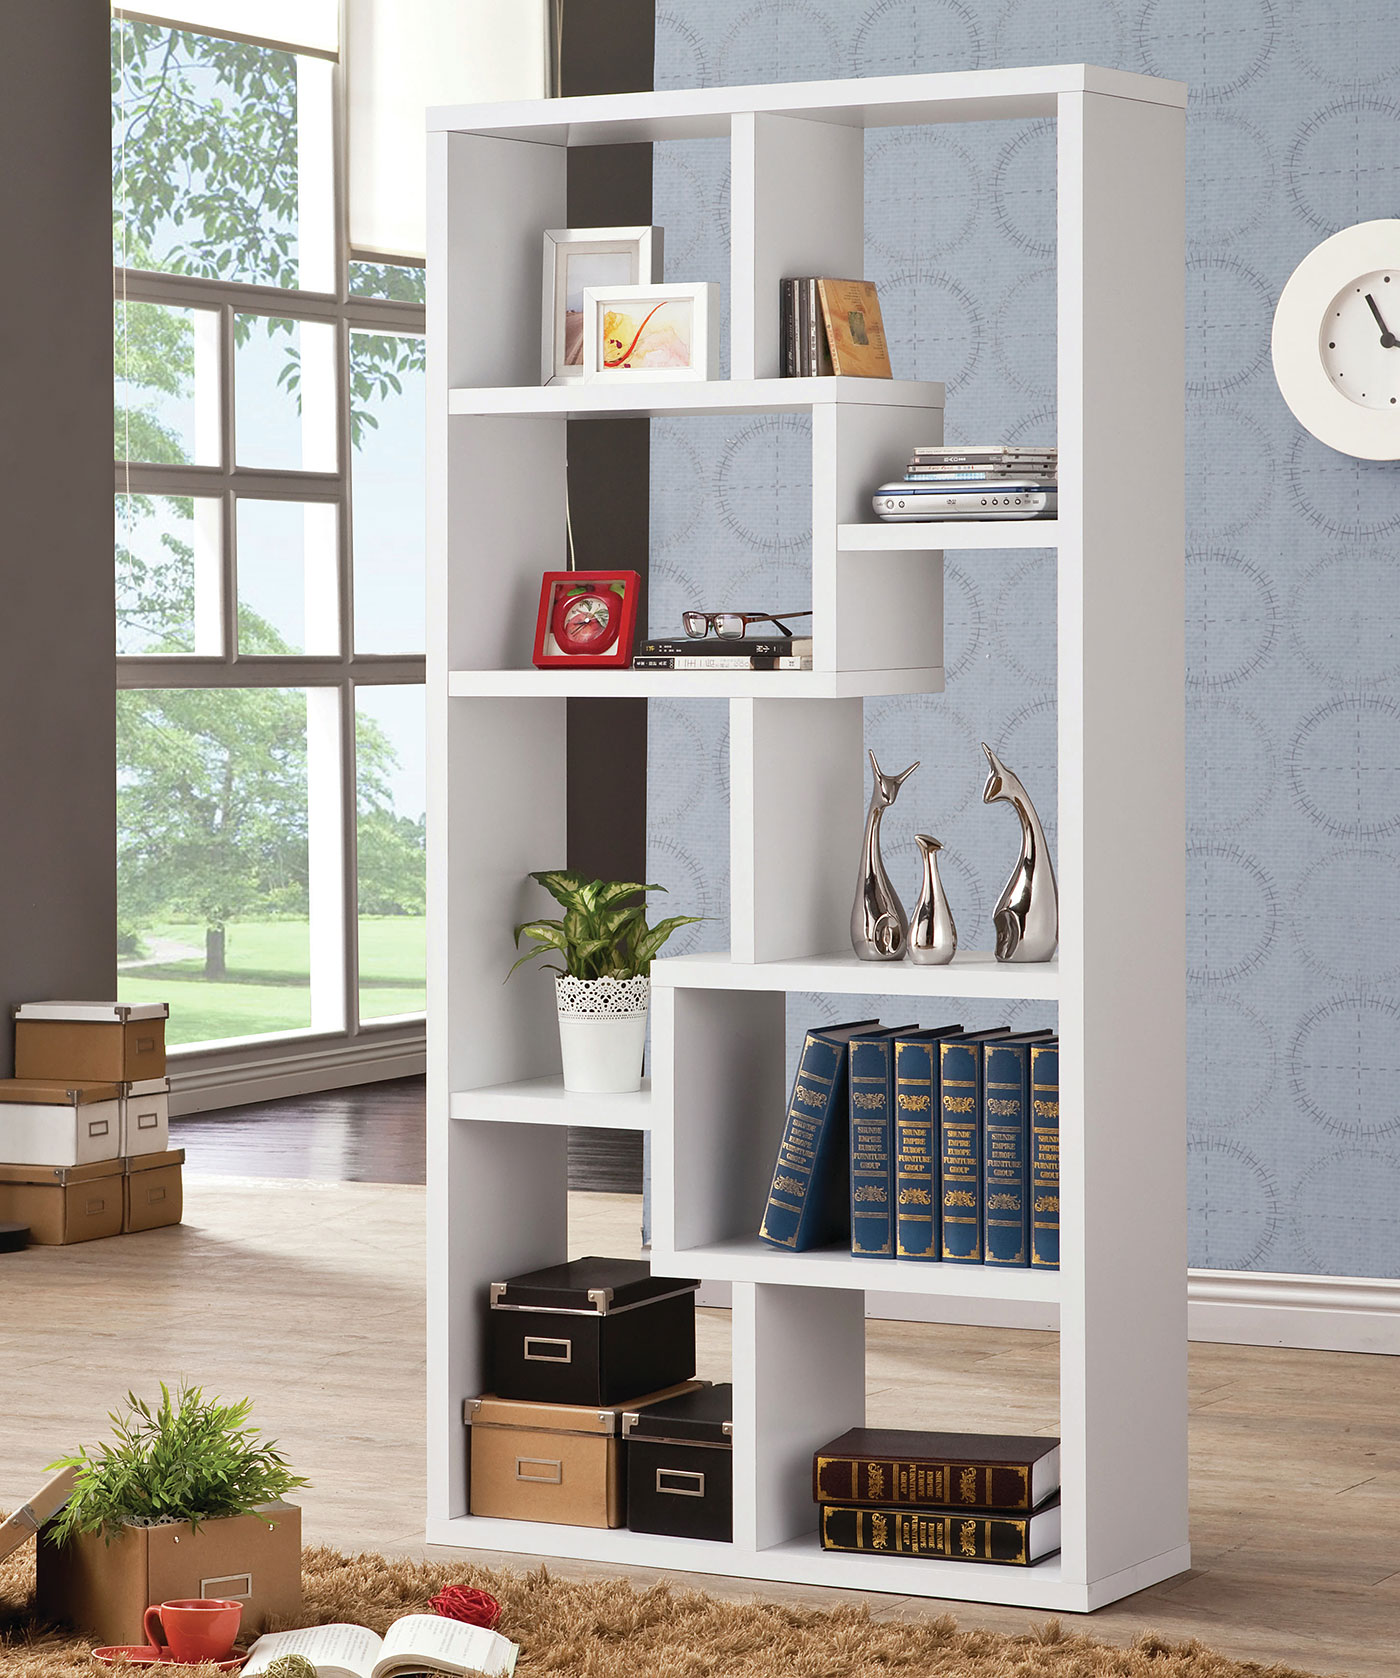 Idea for casual home bookcase - open shelving